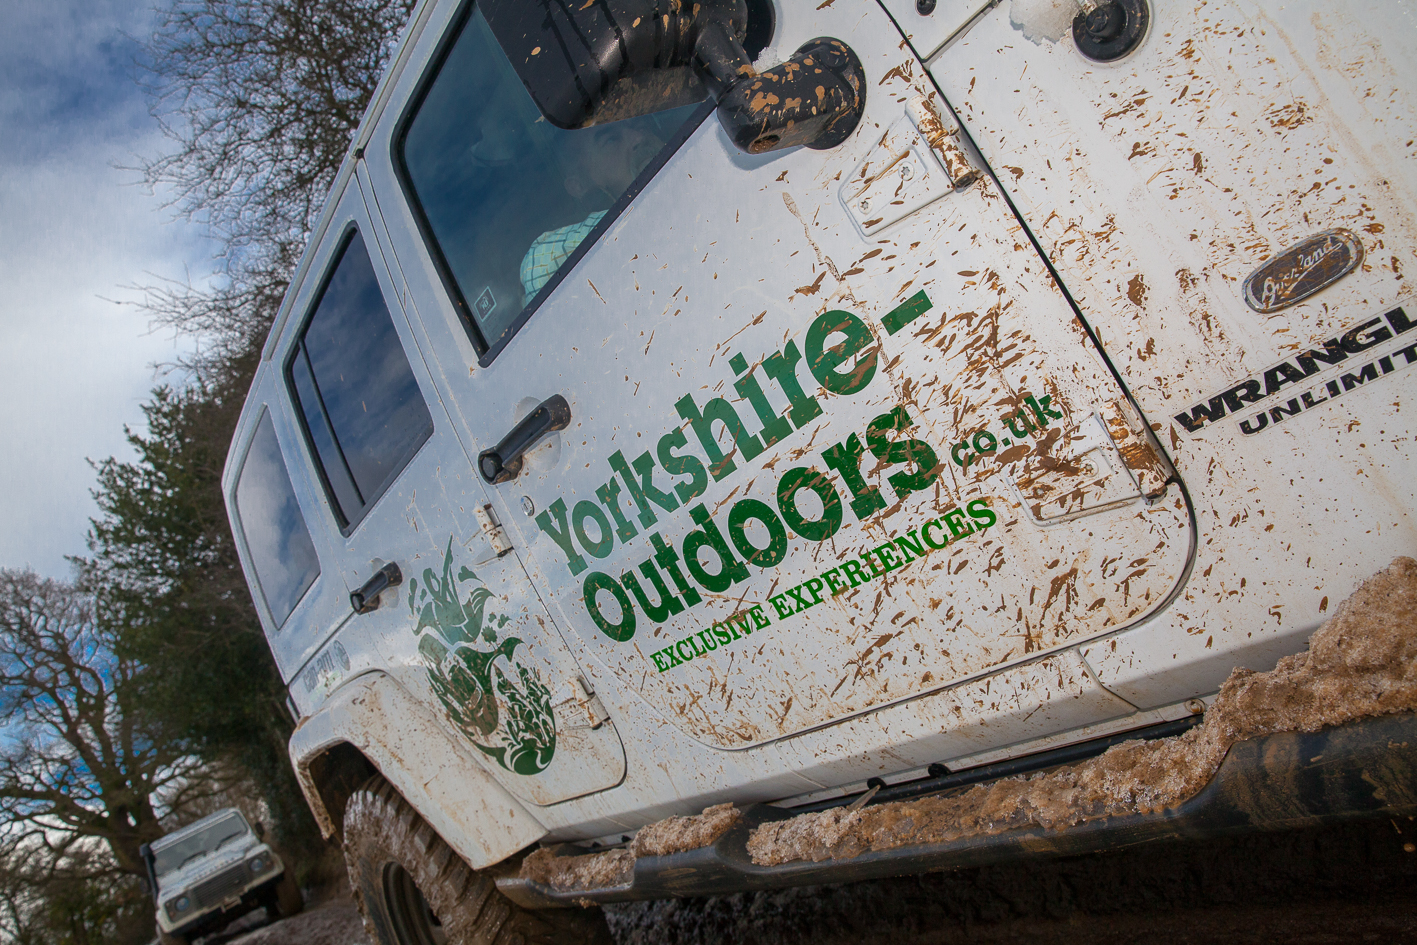 Low Res Yorksire Outdoors 047